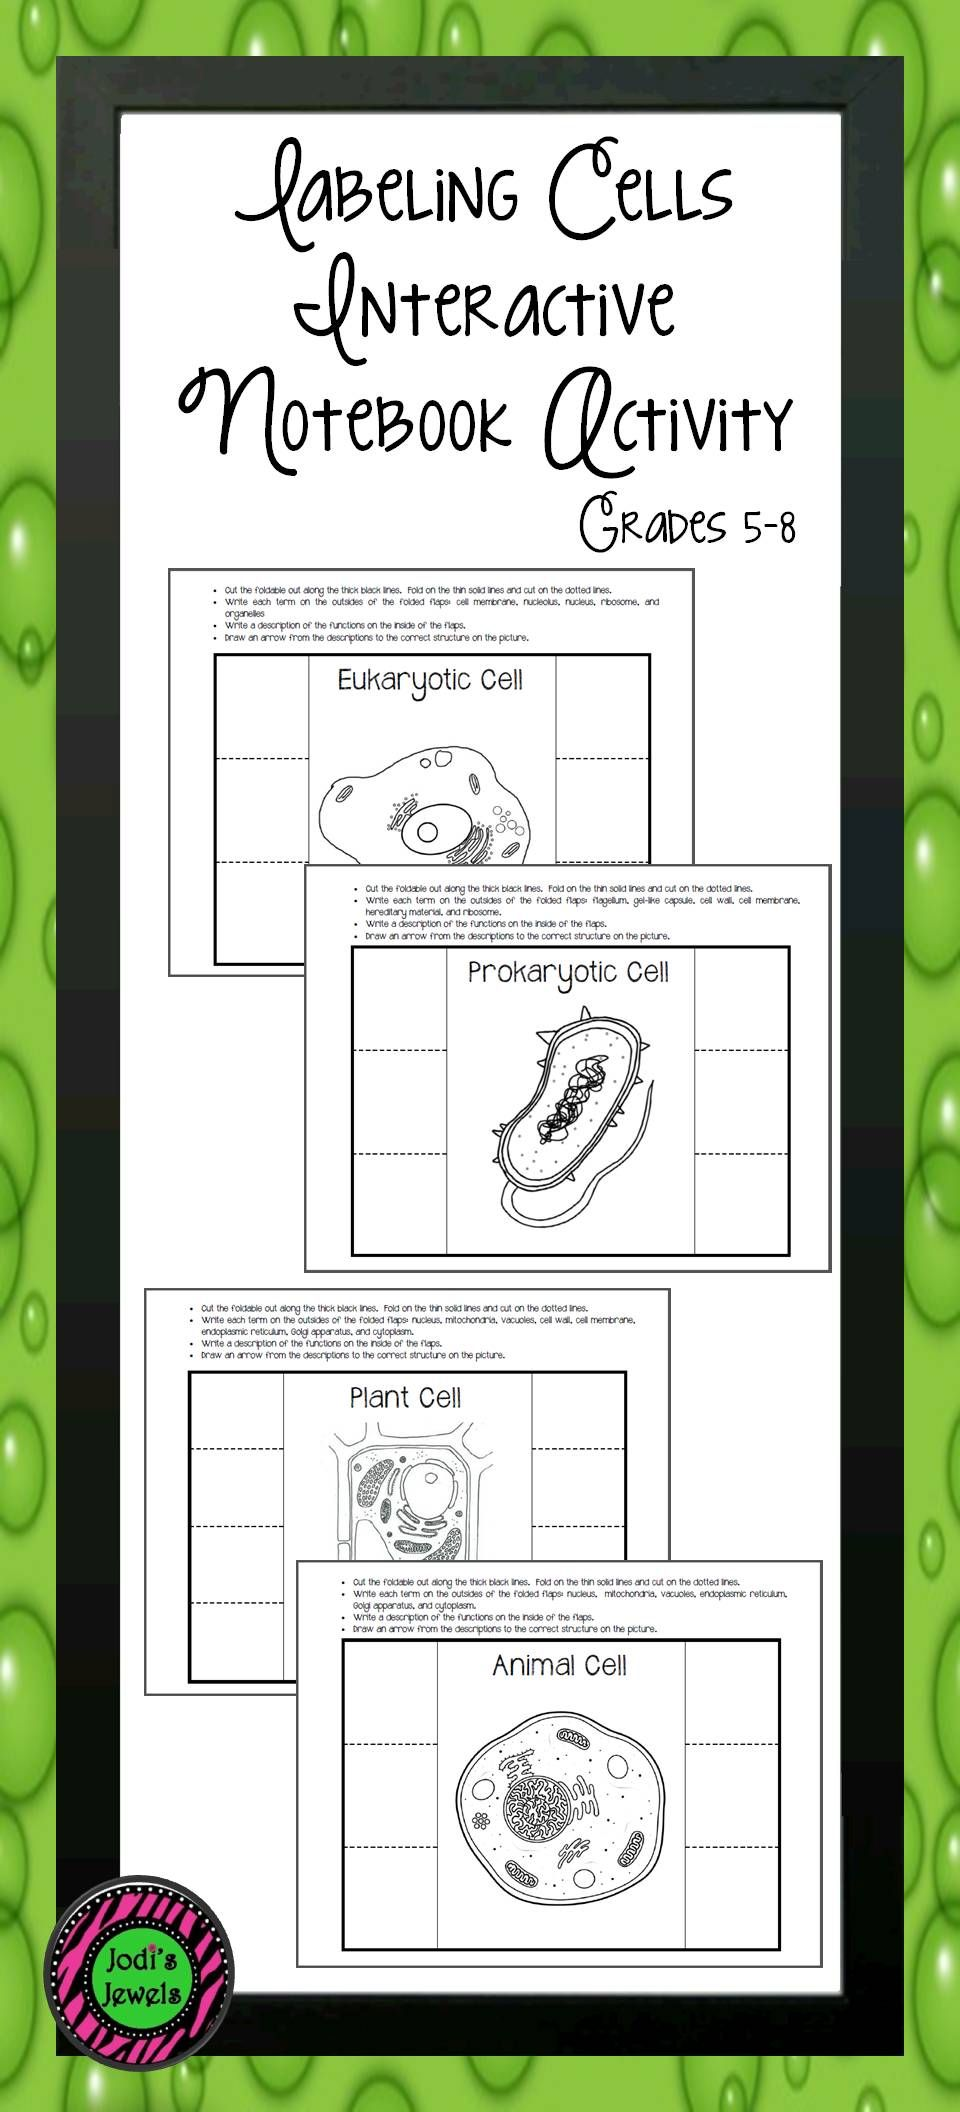 Labeling Cells Interactive Notebook Activity School Ideas Plant Cell Labelled Diagram Students Will Create 4 Different Diagrams Of The Following Animal